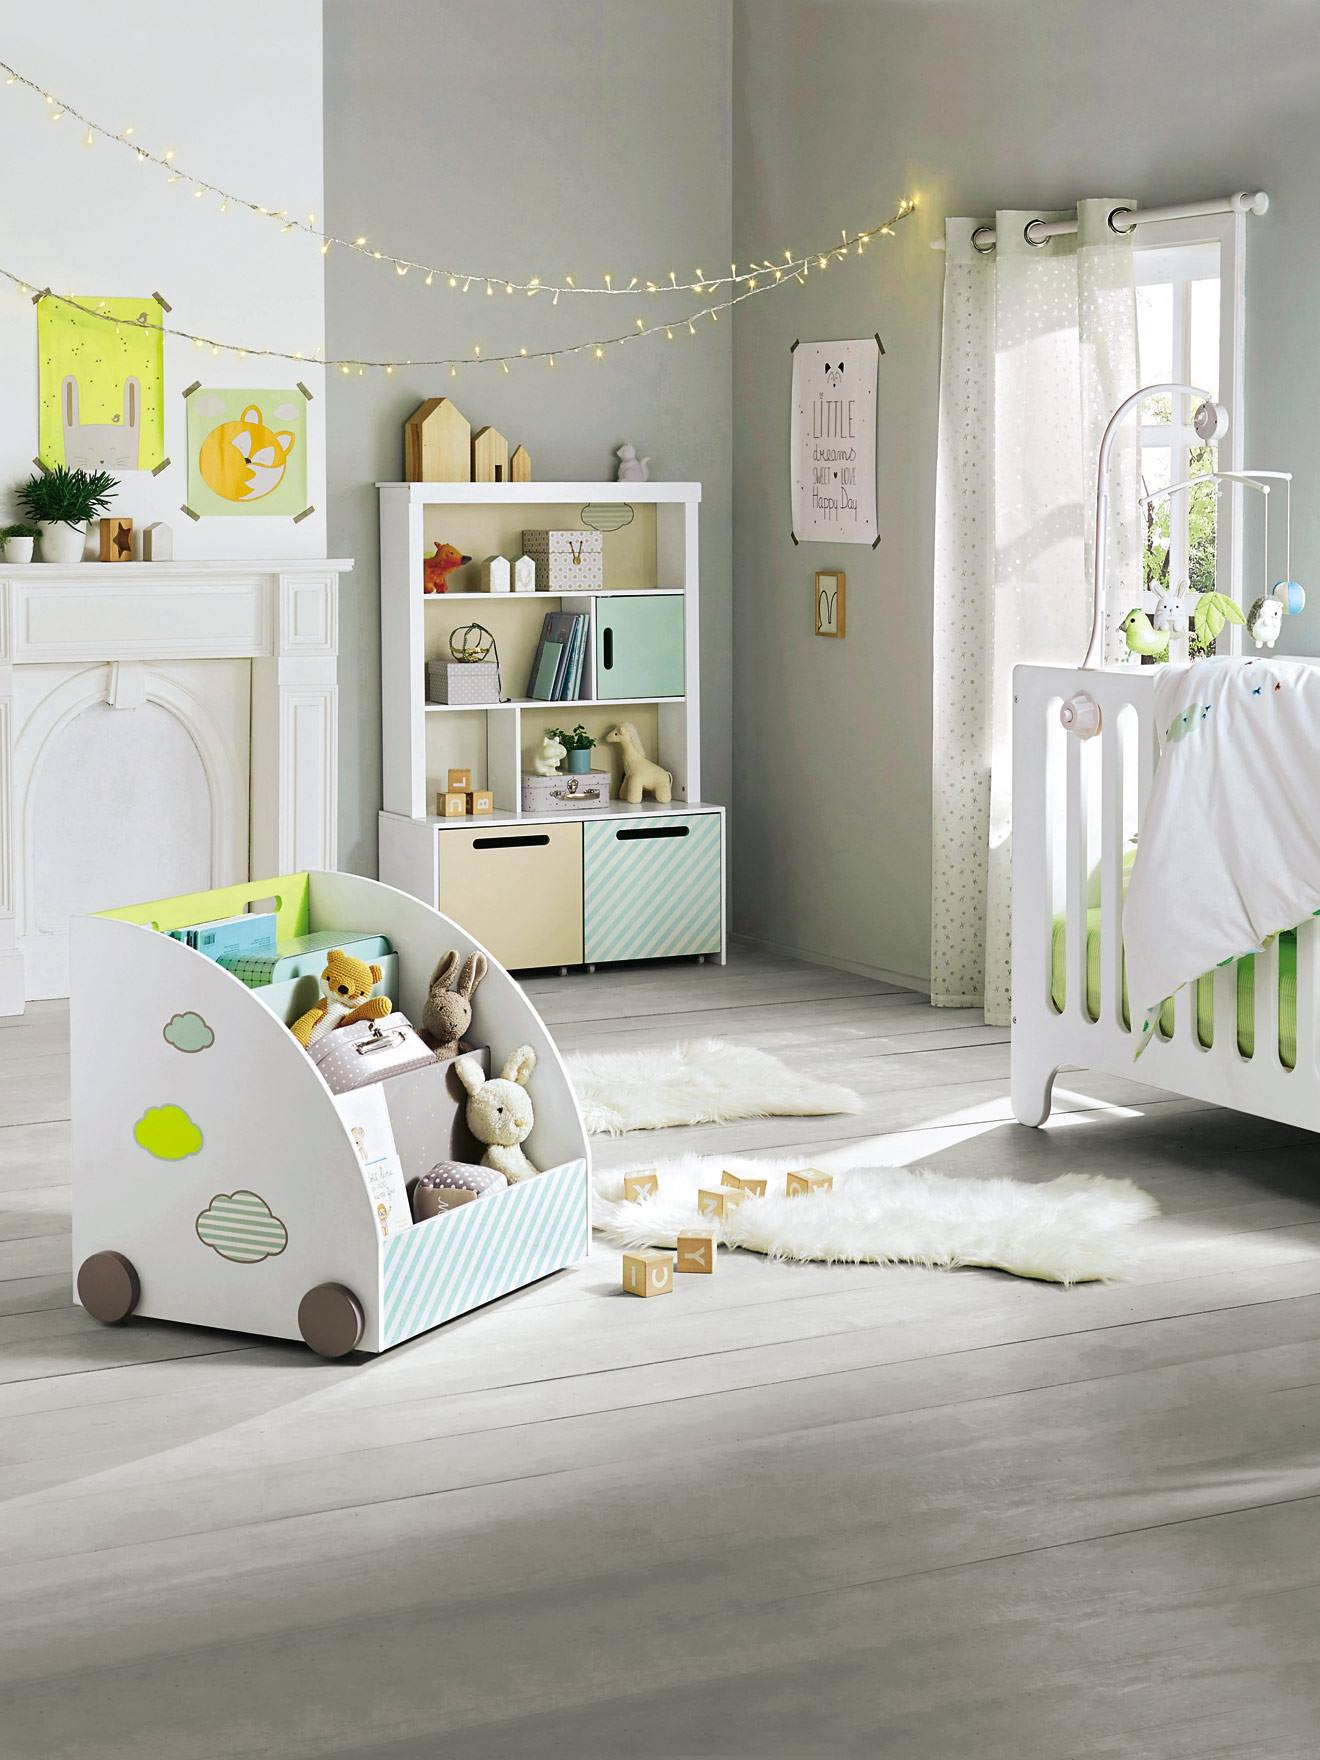 tour de lit b b brod pic nic vert vertbaudet. Black Bedroom Furniture Sets. Home Design Ideas